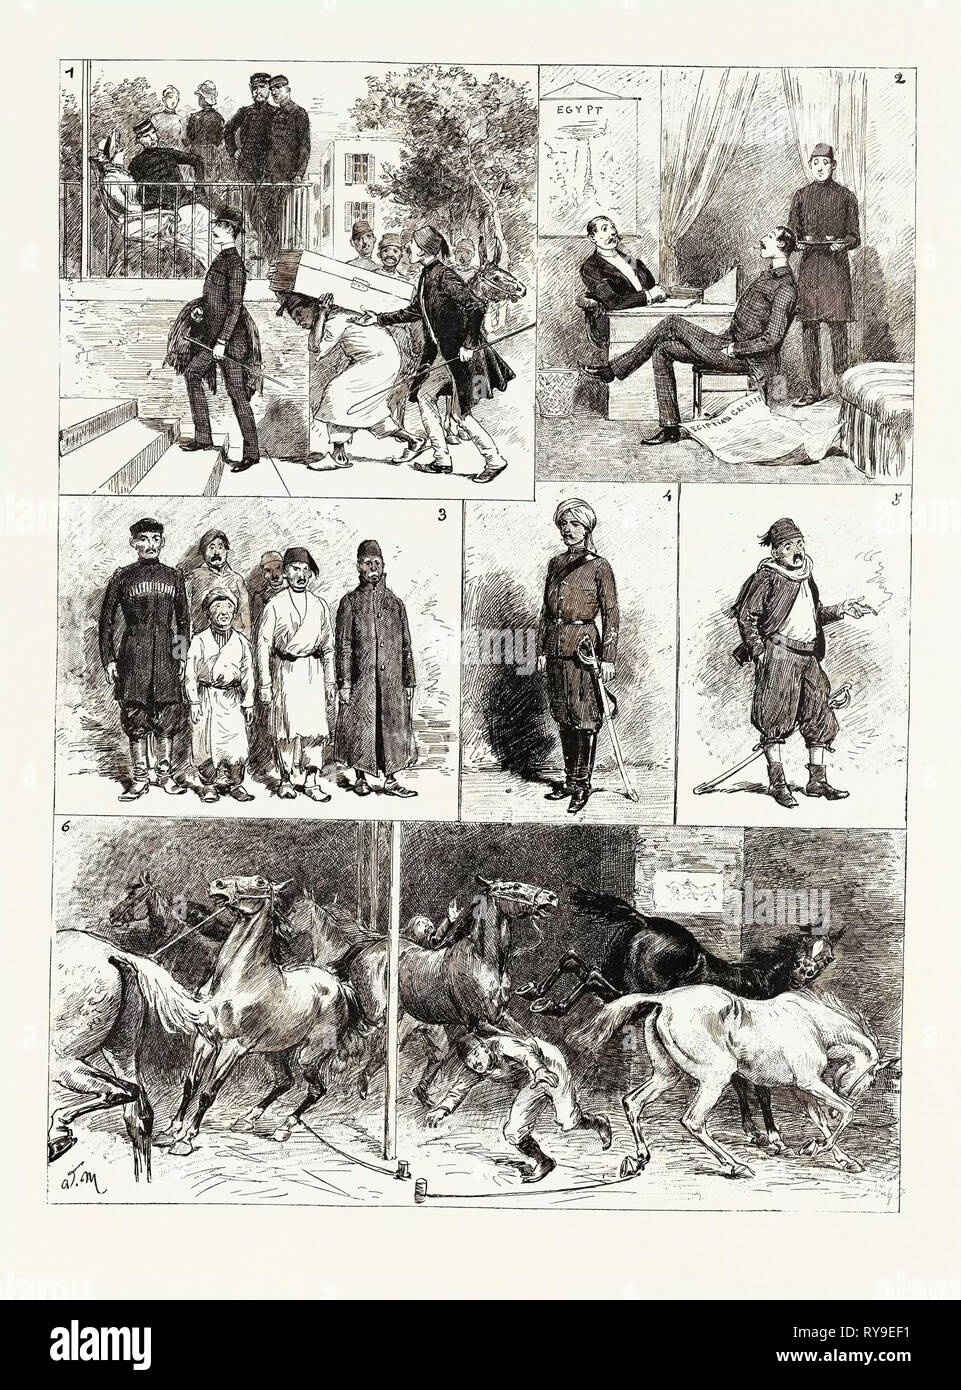 Experiences of a British Officer of the Gendarmerie in Egypt, Engraving 1884 - Stock Image